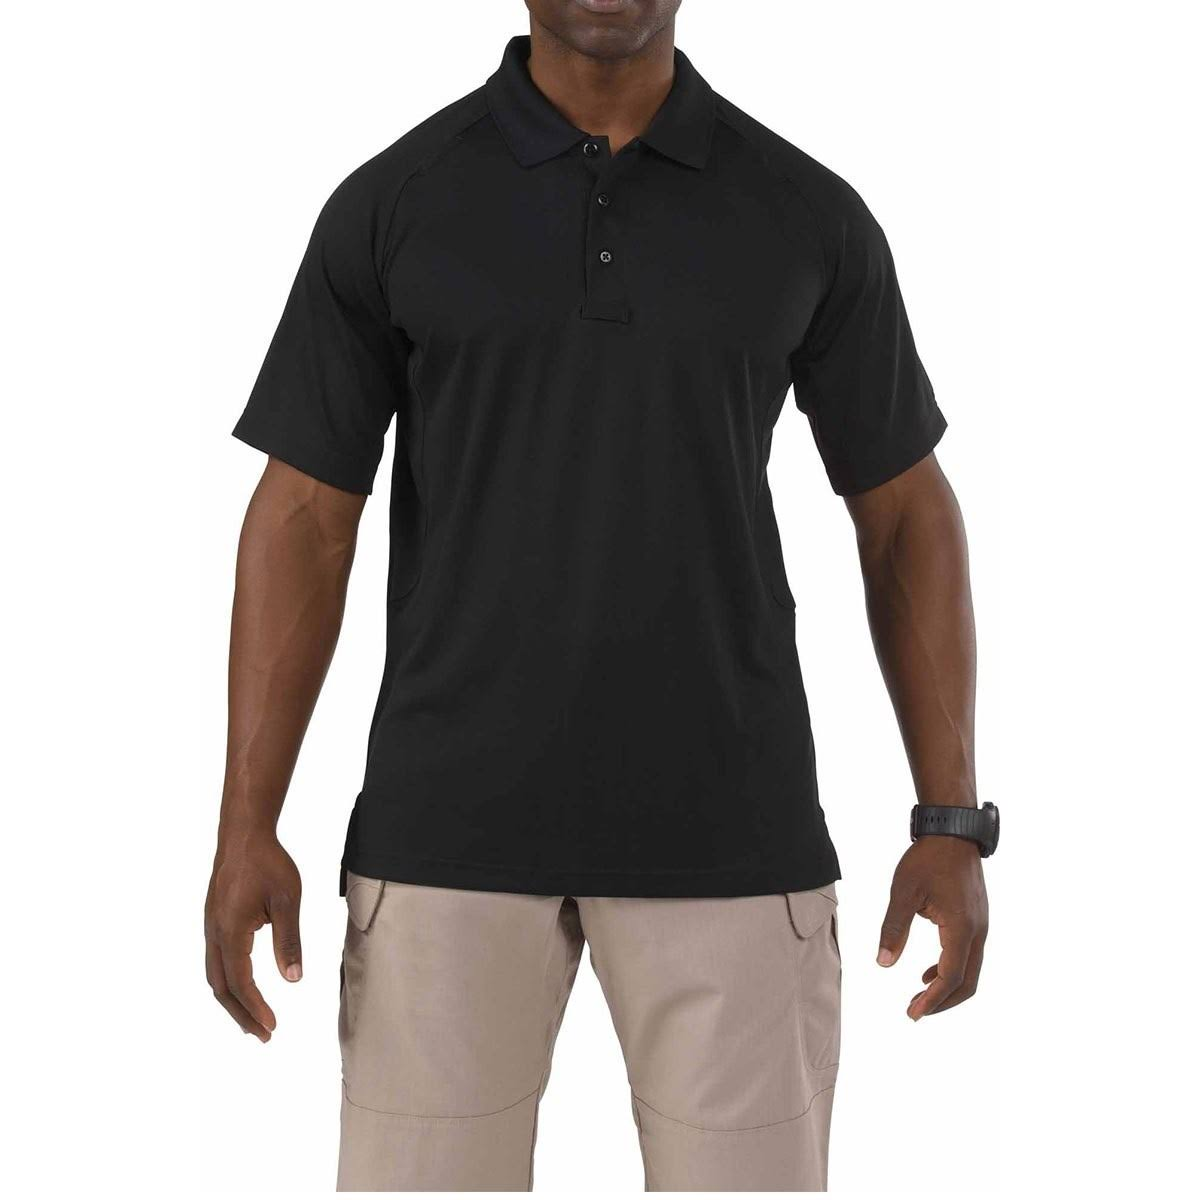 5.11 Tactical #71049 Performance Polo Short Sleeve Shirt - Black, Large